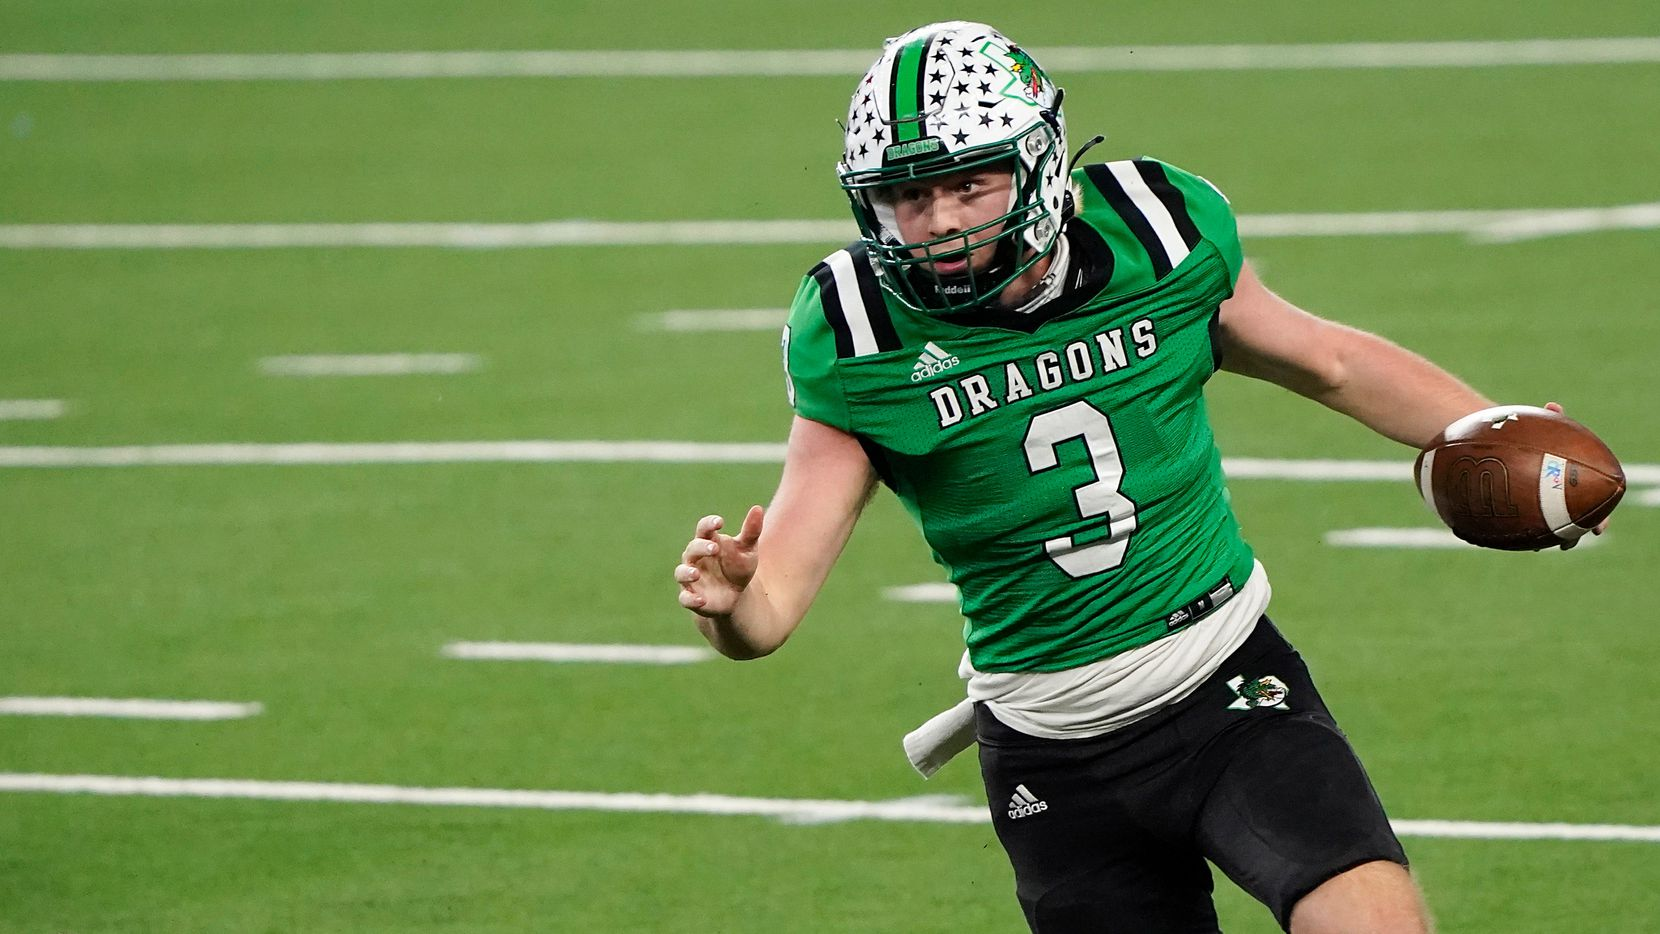 Southlake Carroll quarterback Quinn Ewers (3) gets past Austin Westlake linebacker Nicholas Morris (13) during the fourth quarter of the Class 6A Division I state football championship game at AT&T Stadium on Saturday, Jan. 16, 2021, in Arlington, Texas. Westlake won the game 52-34.